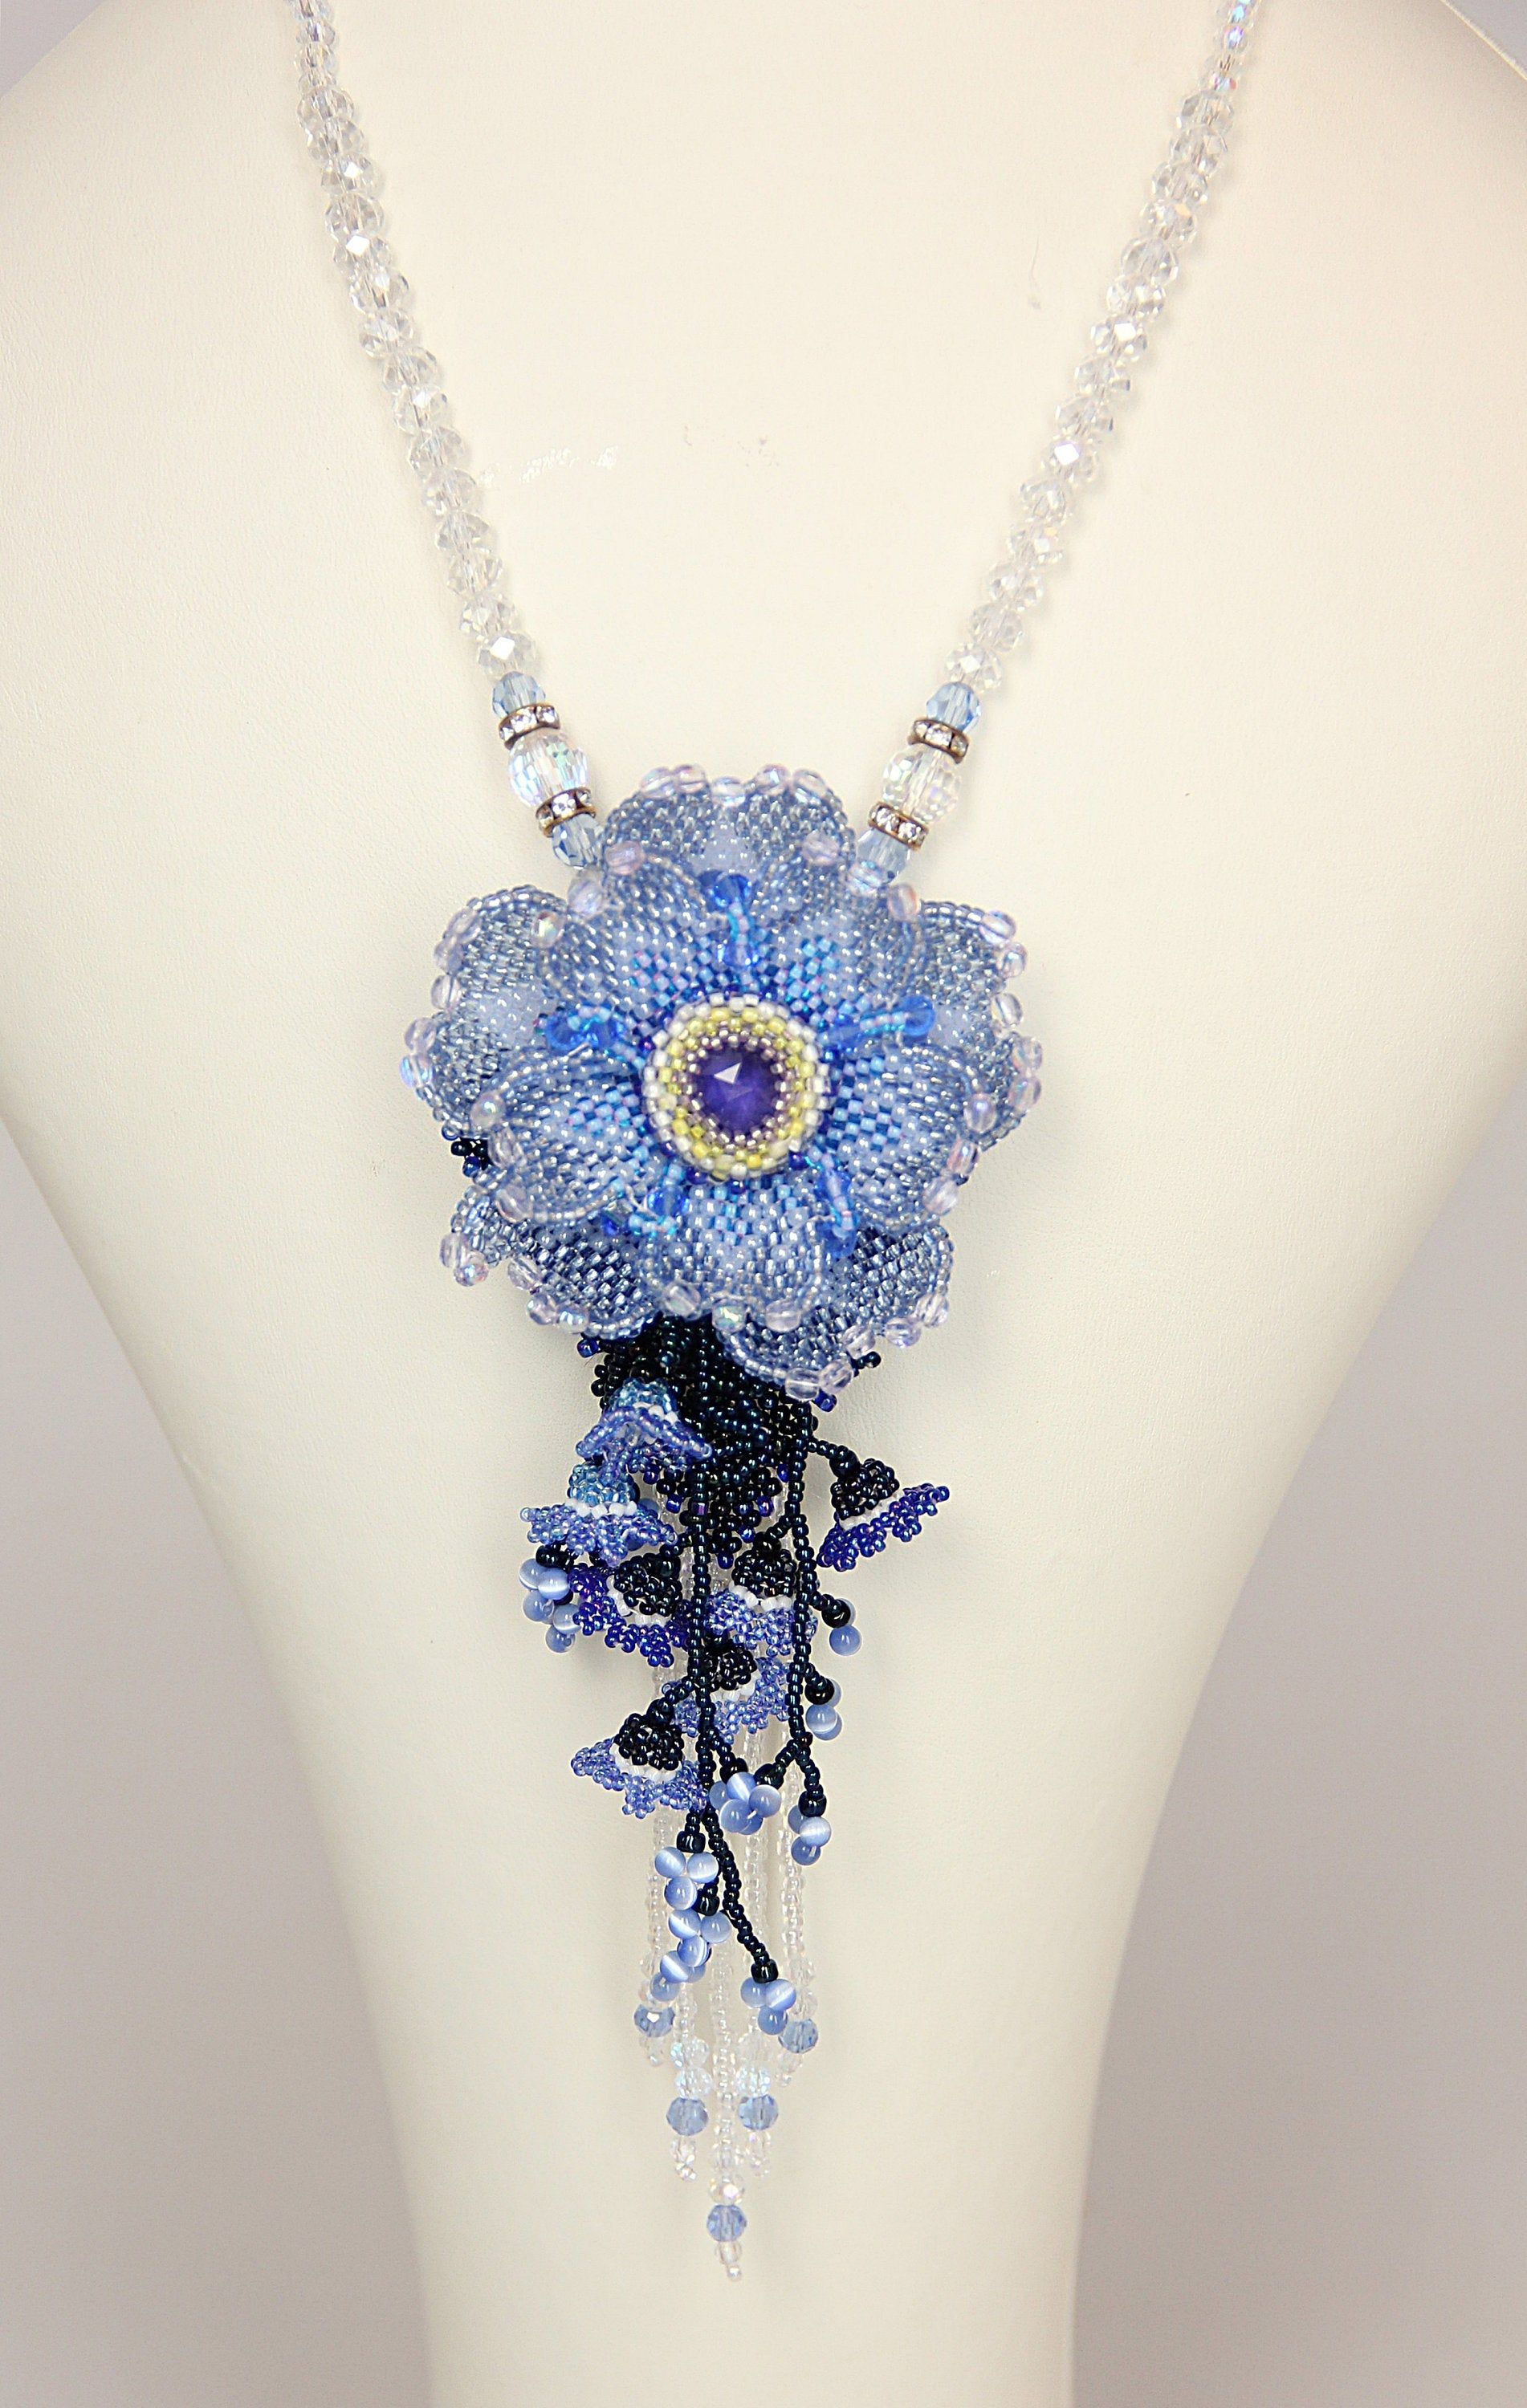 Blue Anemone Flower Bead Embroidered Necklace Bead Woven Etsy Beaded Jewelry Patterns Bead Weaving Jewelry Patterns